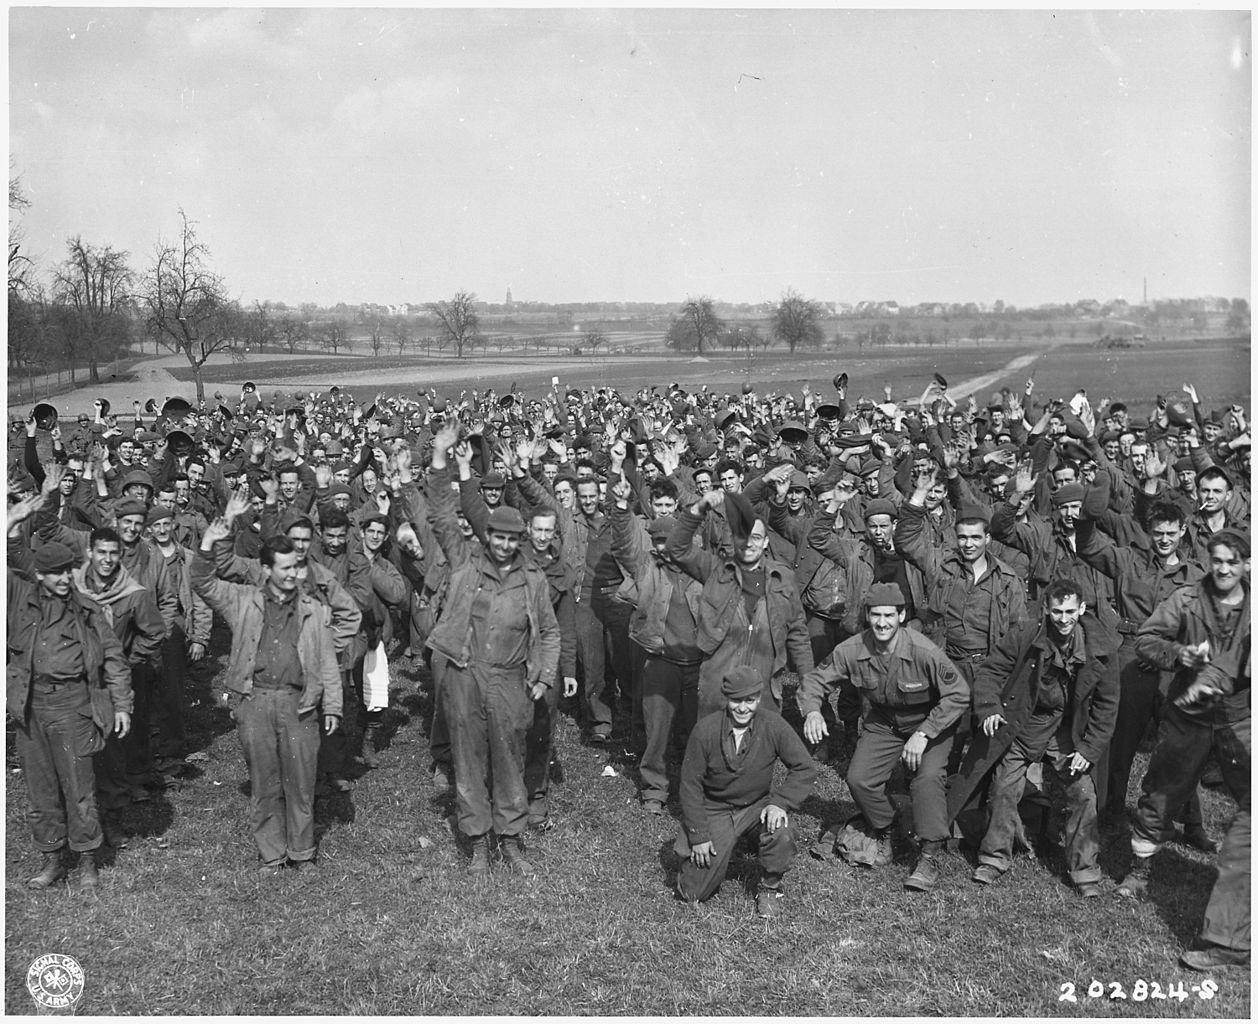 1,200 U.S. soldiers escape from POW camp at Limburg, Germany